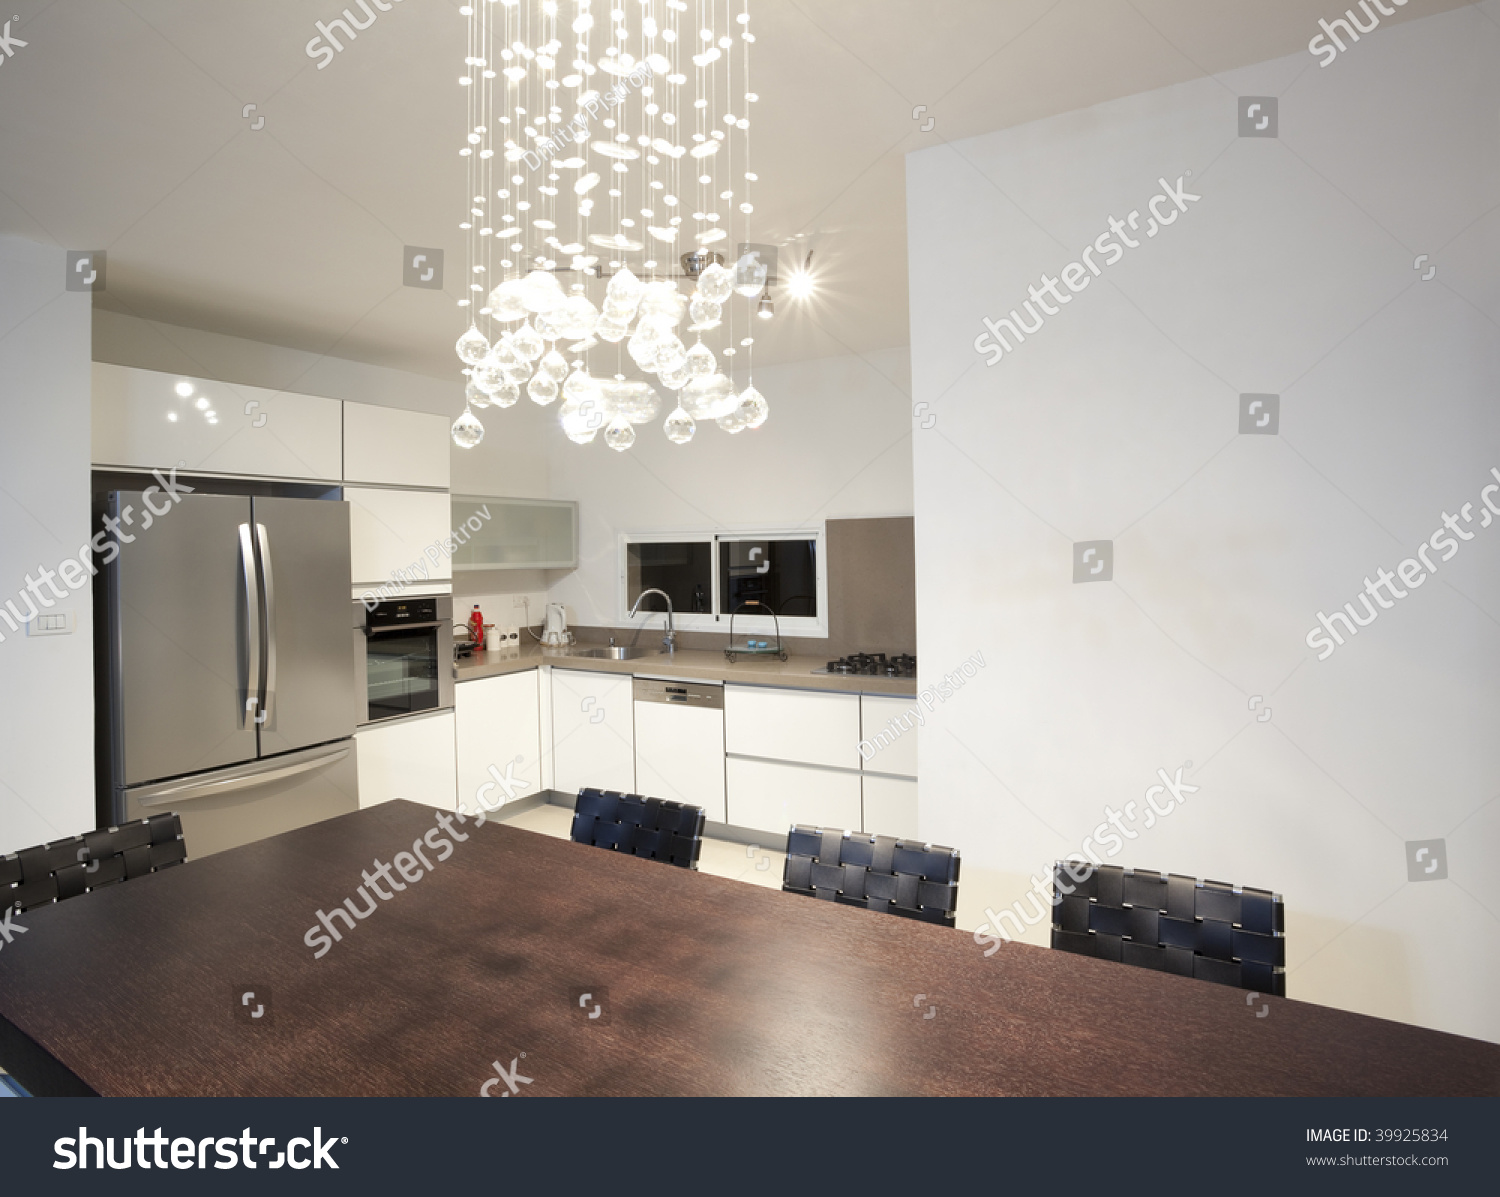 Modern Design Kitchen With White And Wood Elements Stock Photo 39925834 Shutterstock